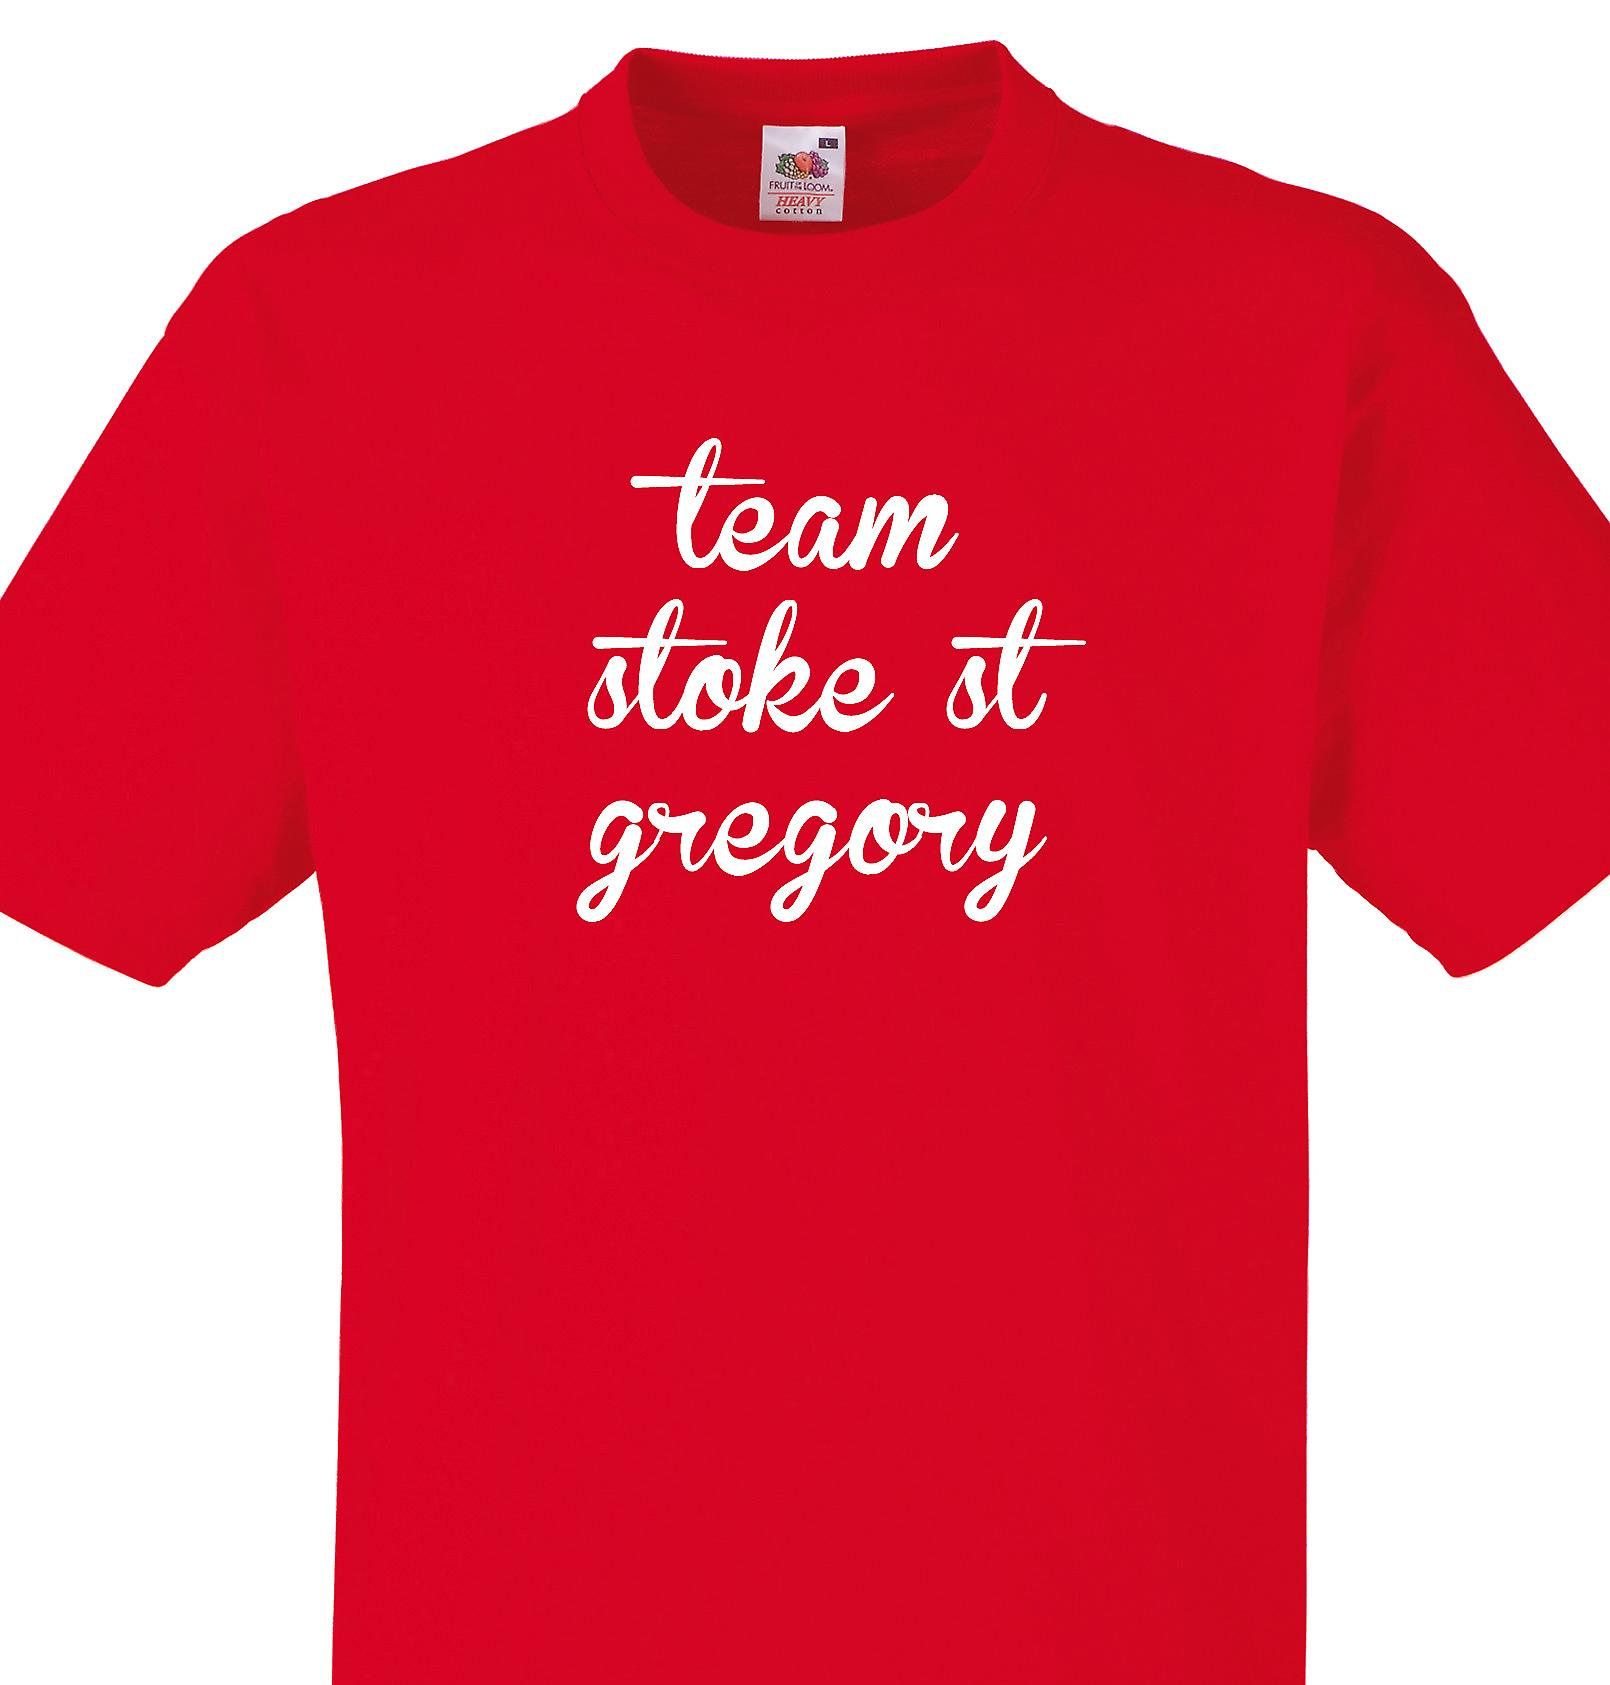 Team Stoke st gregory Red T shirt